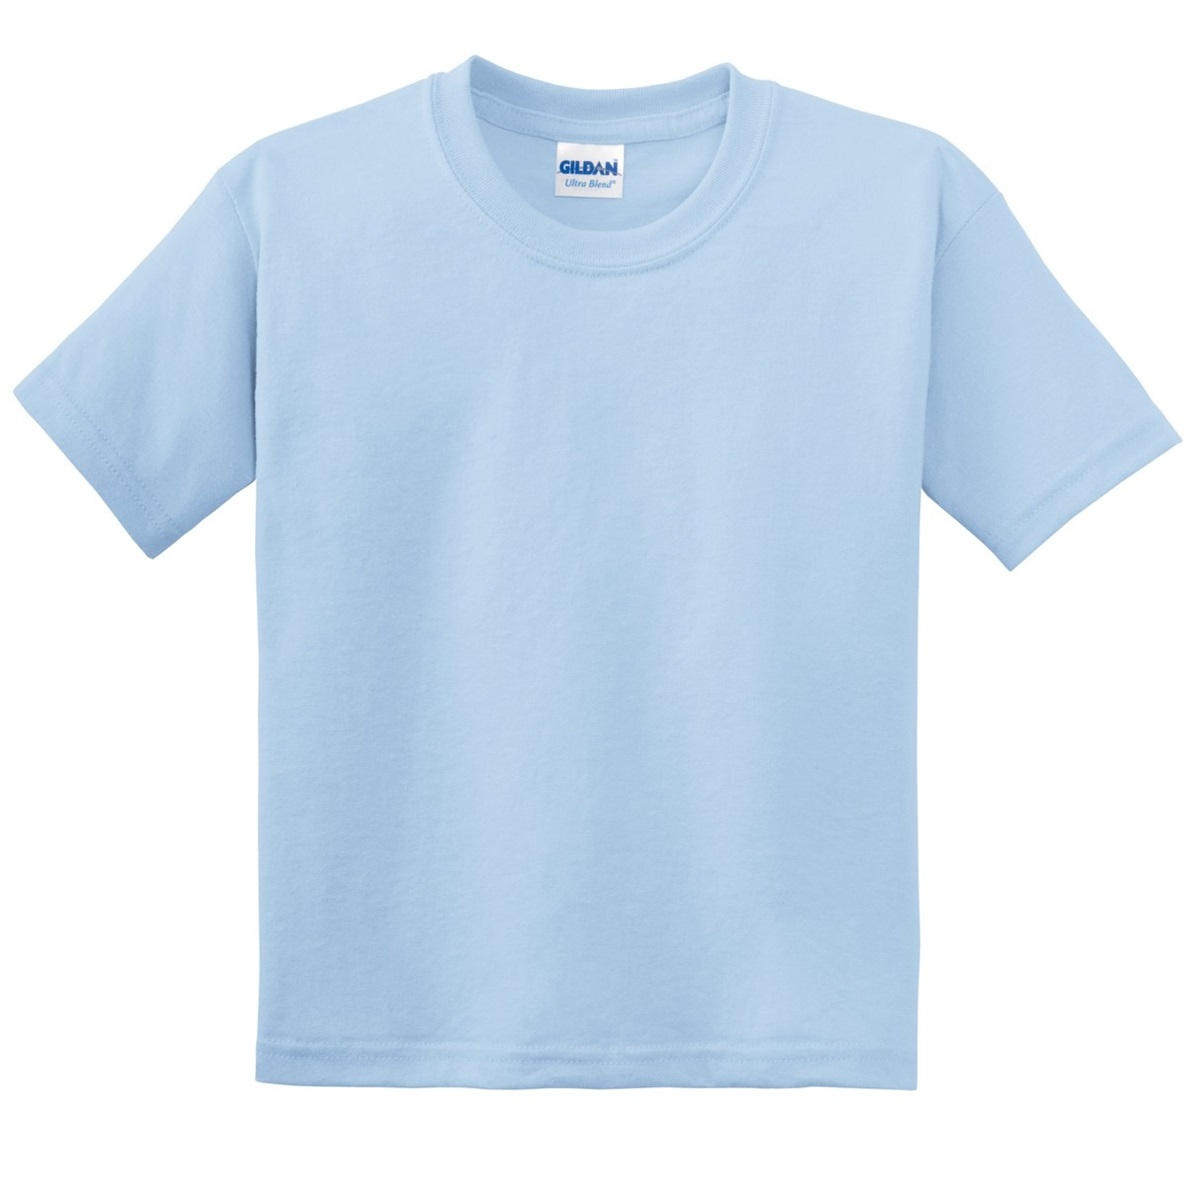 Gildan 8000b youth dryblend t shirt light blue for One color t shirt